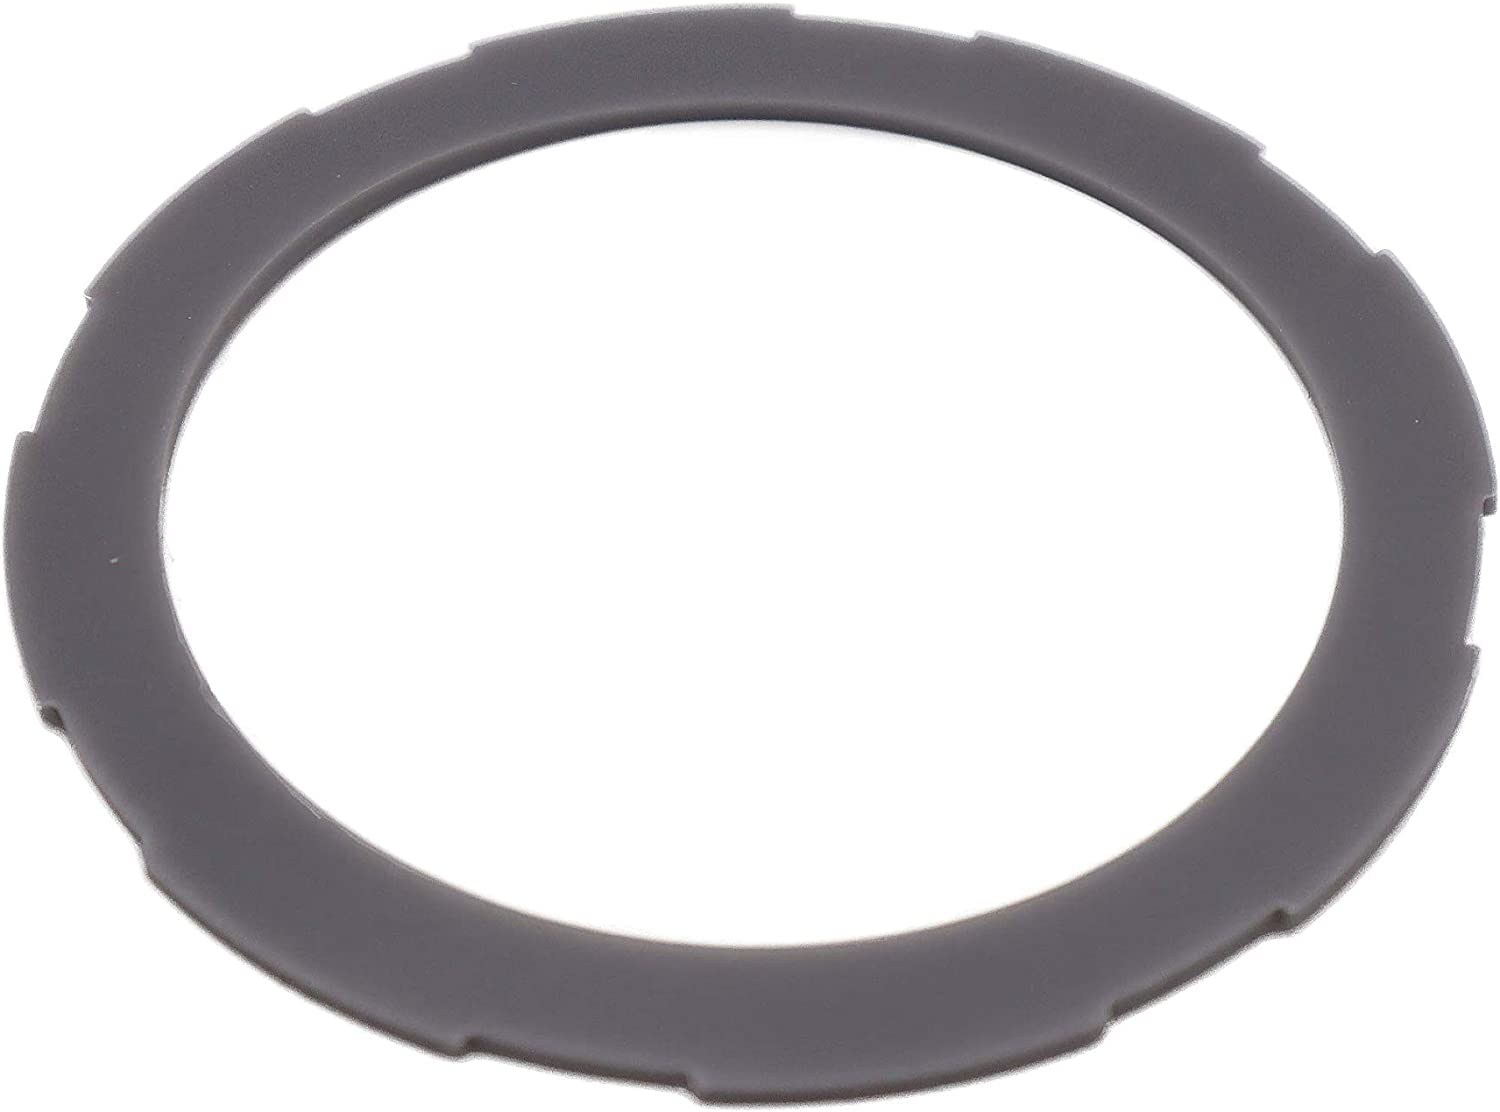 Blendin Replacement Rubber Sealing Gasket, Compatible with Oster Pro 1200 Blenders